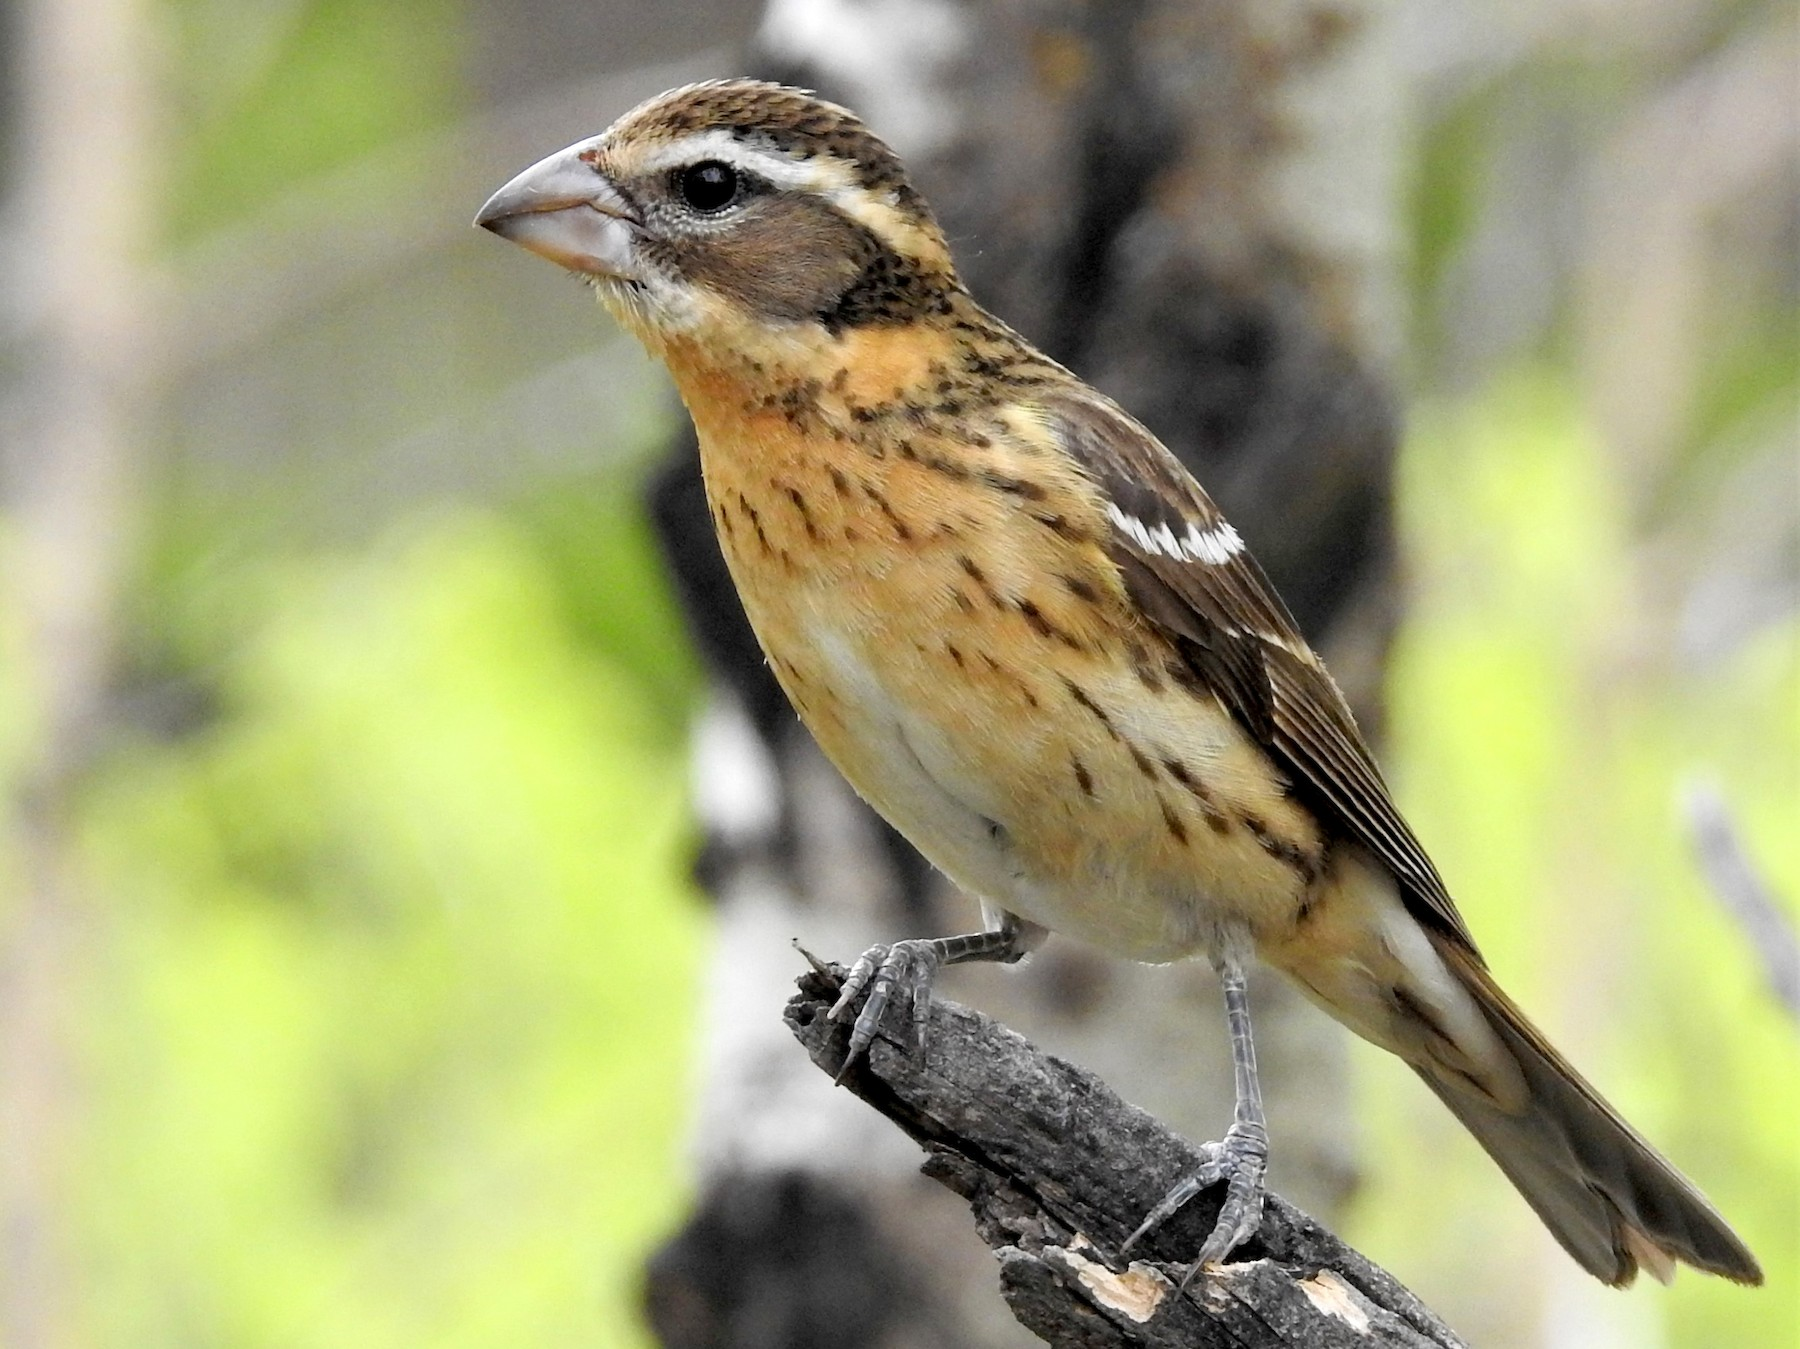 Black-headed Grosbeak - Diane Stinson